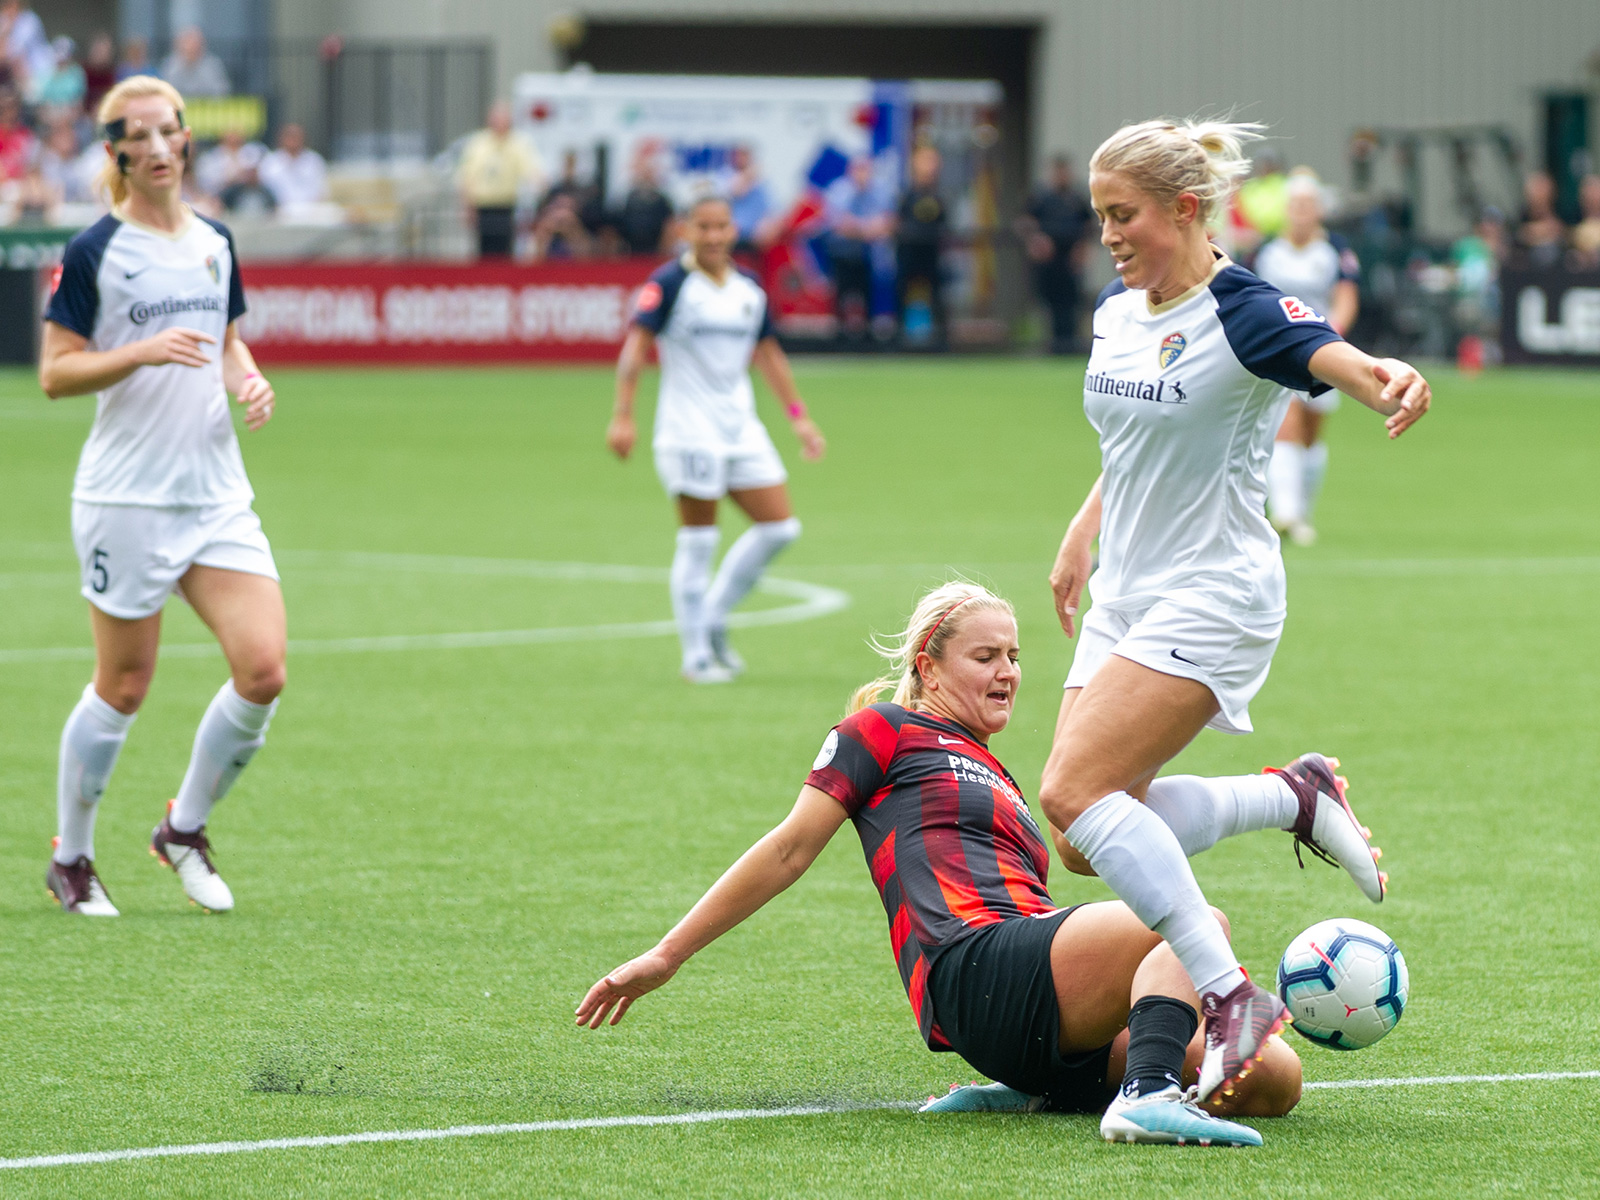 The Portland Thorns and NC Courage are in the race for the NWSL Shield